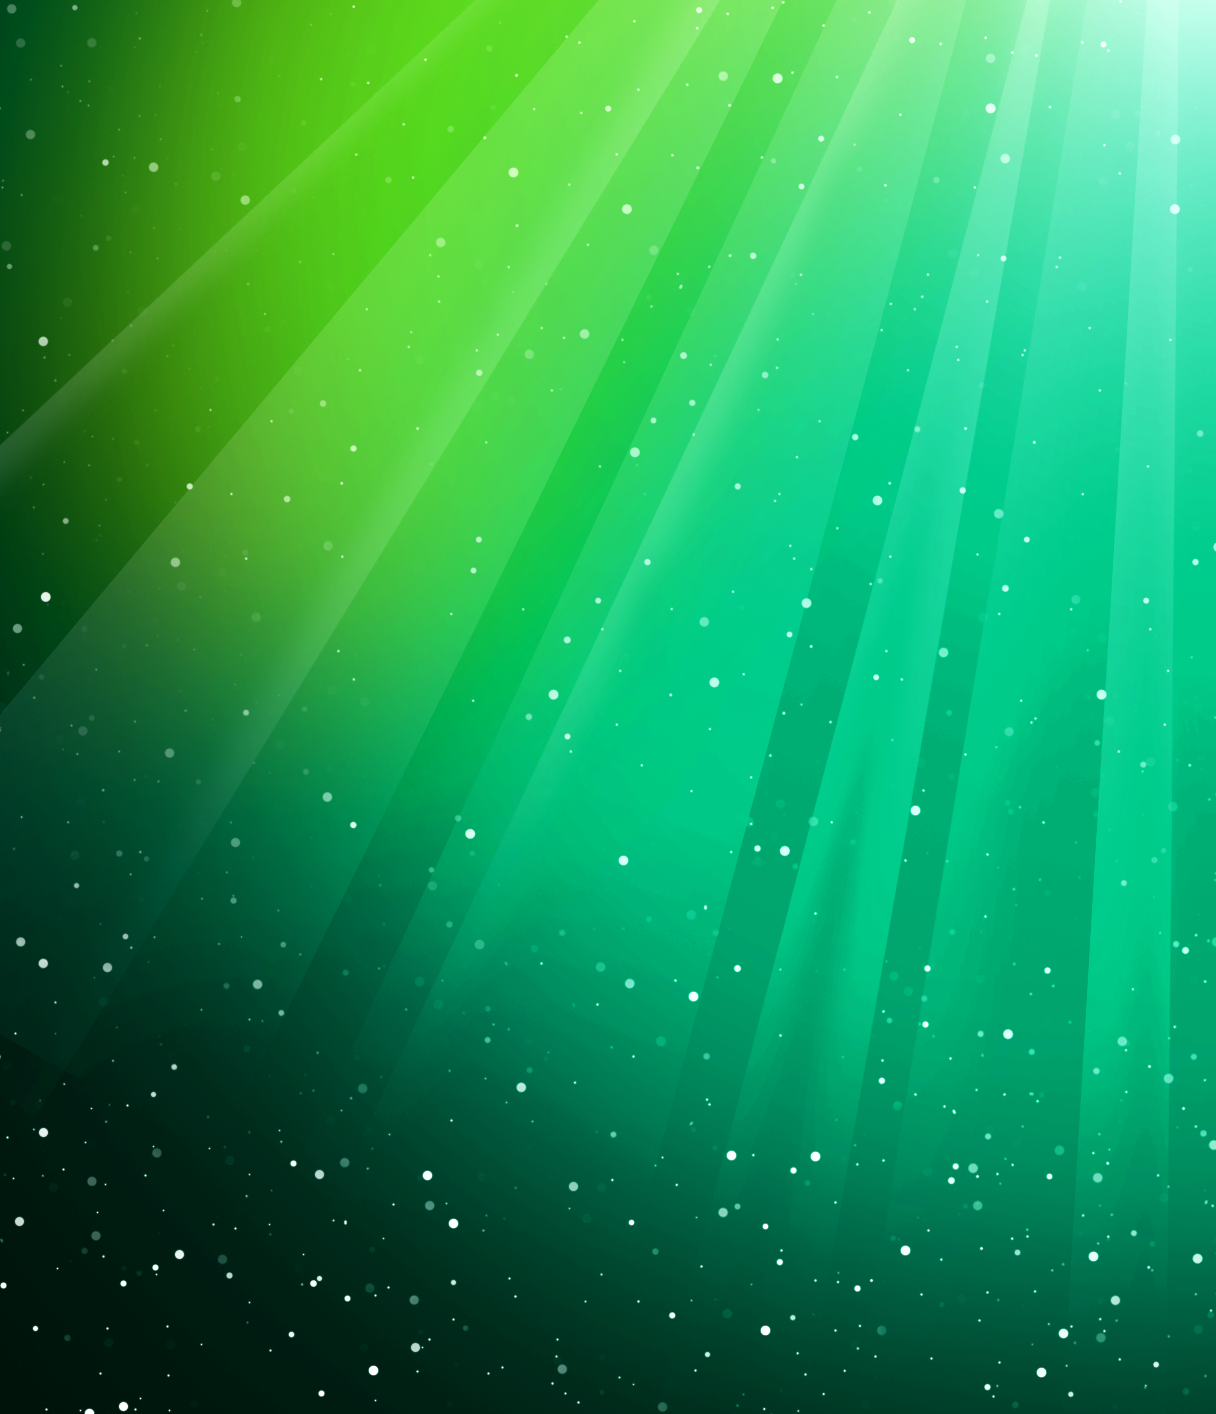 1216x1414 Green And Blue Abstract Wallpaper Image - Green And Blue ...